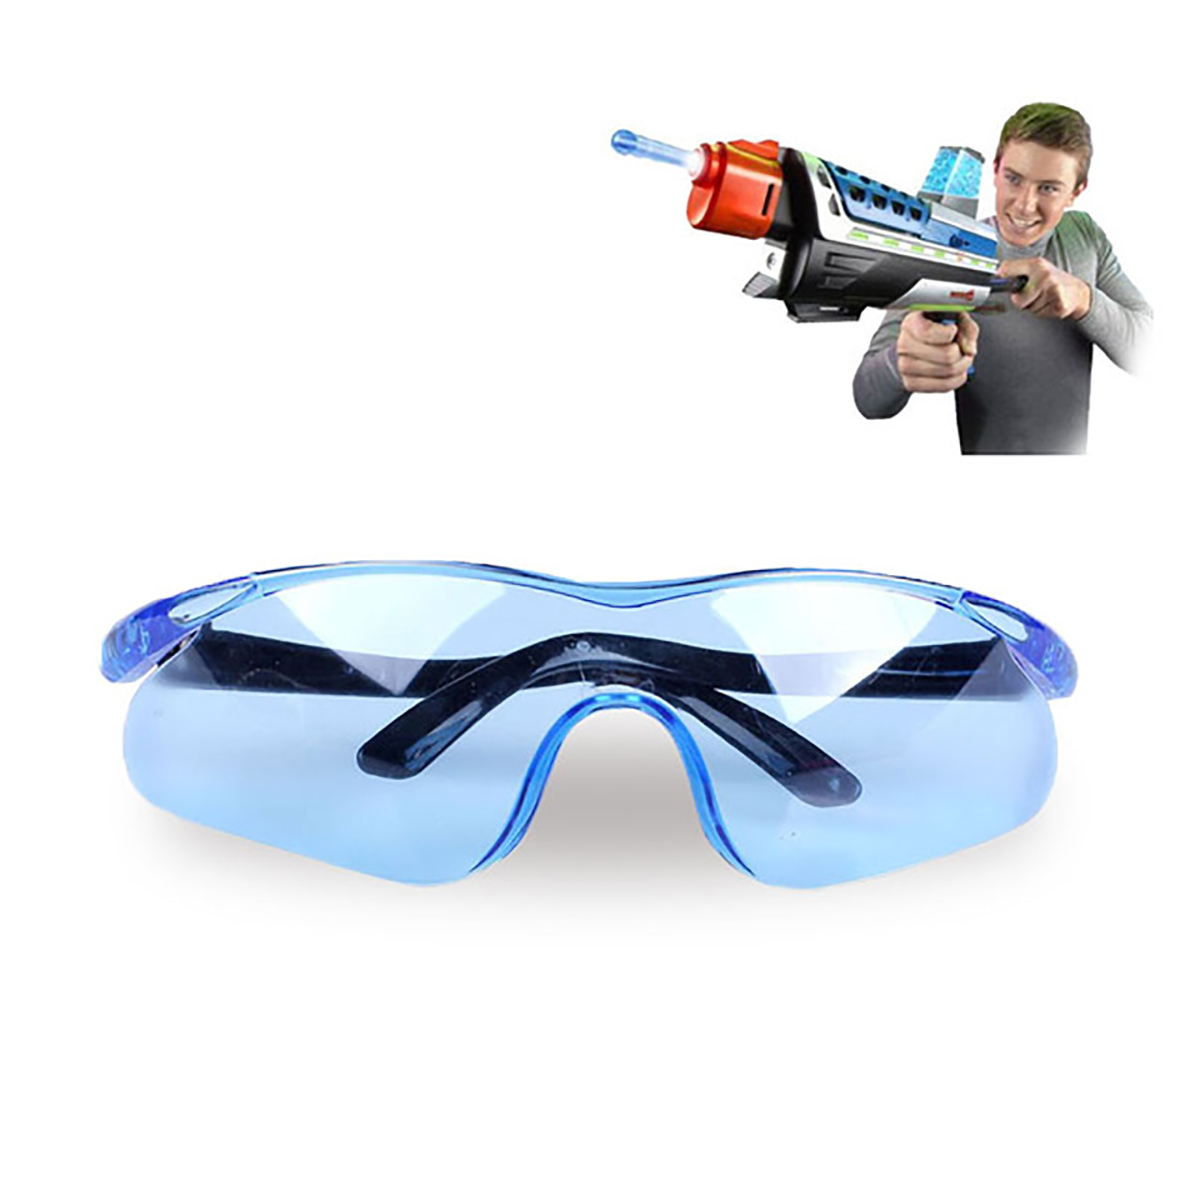 1PC Blue Plastic Durable Toy Gun Glasses For Nerf Gun Accessories Protect Eyes Unisex Outdoor Children Kids Classic Gifts